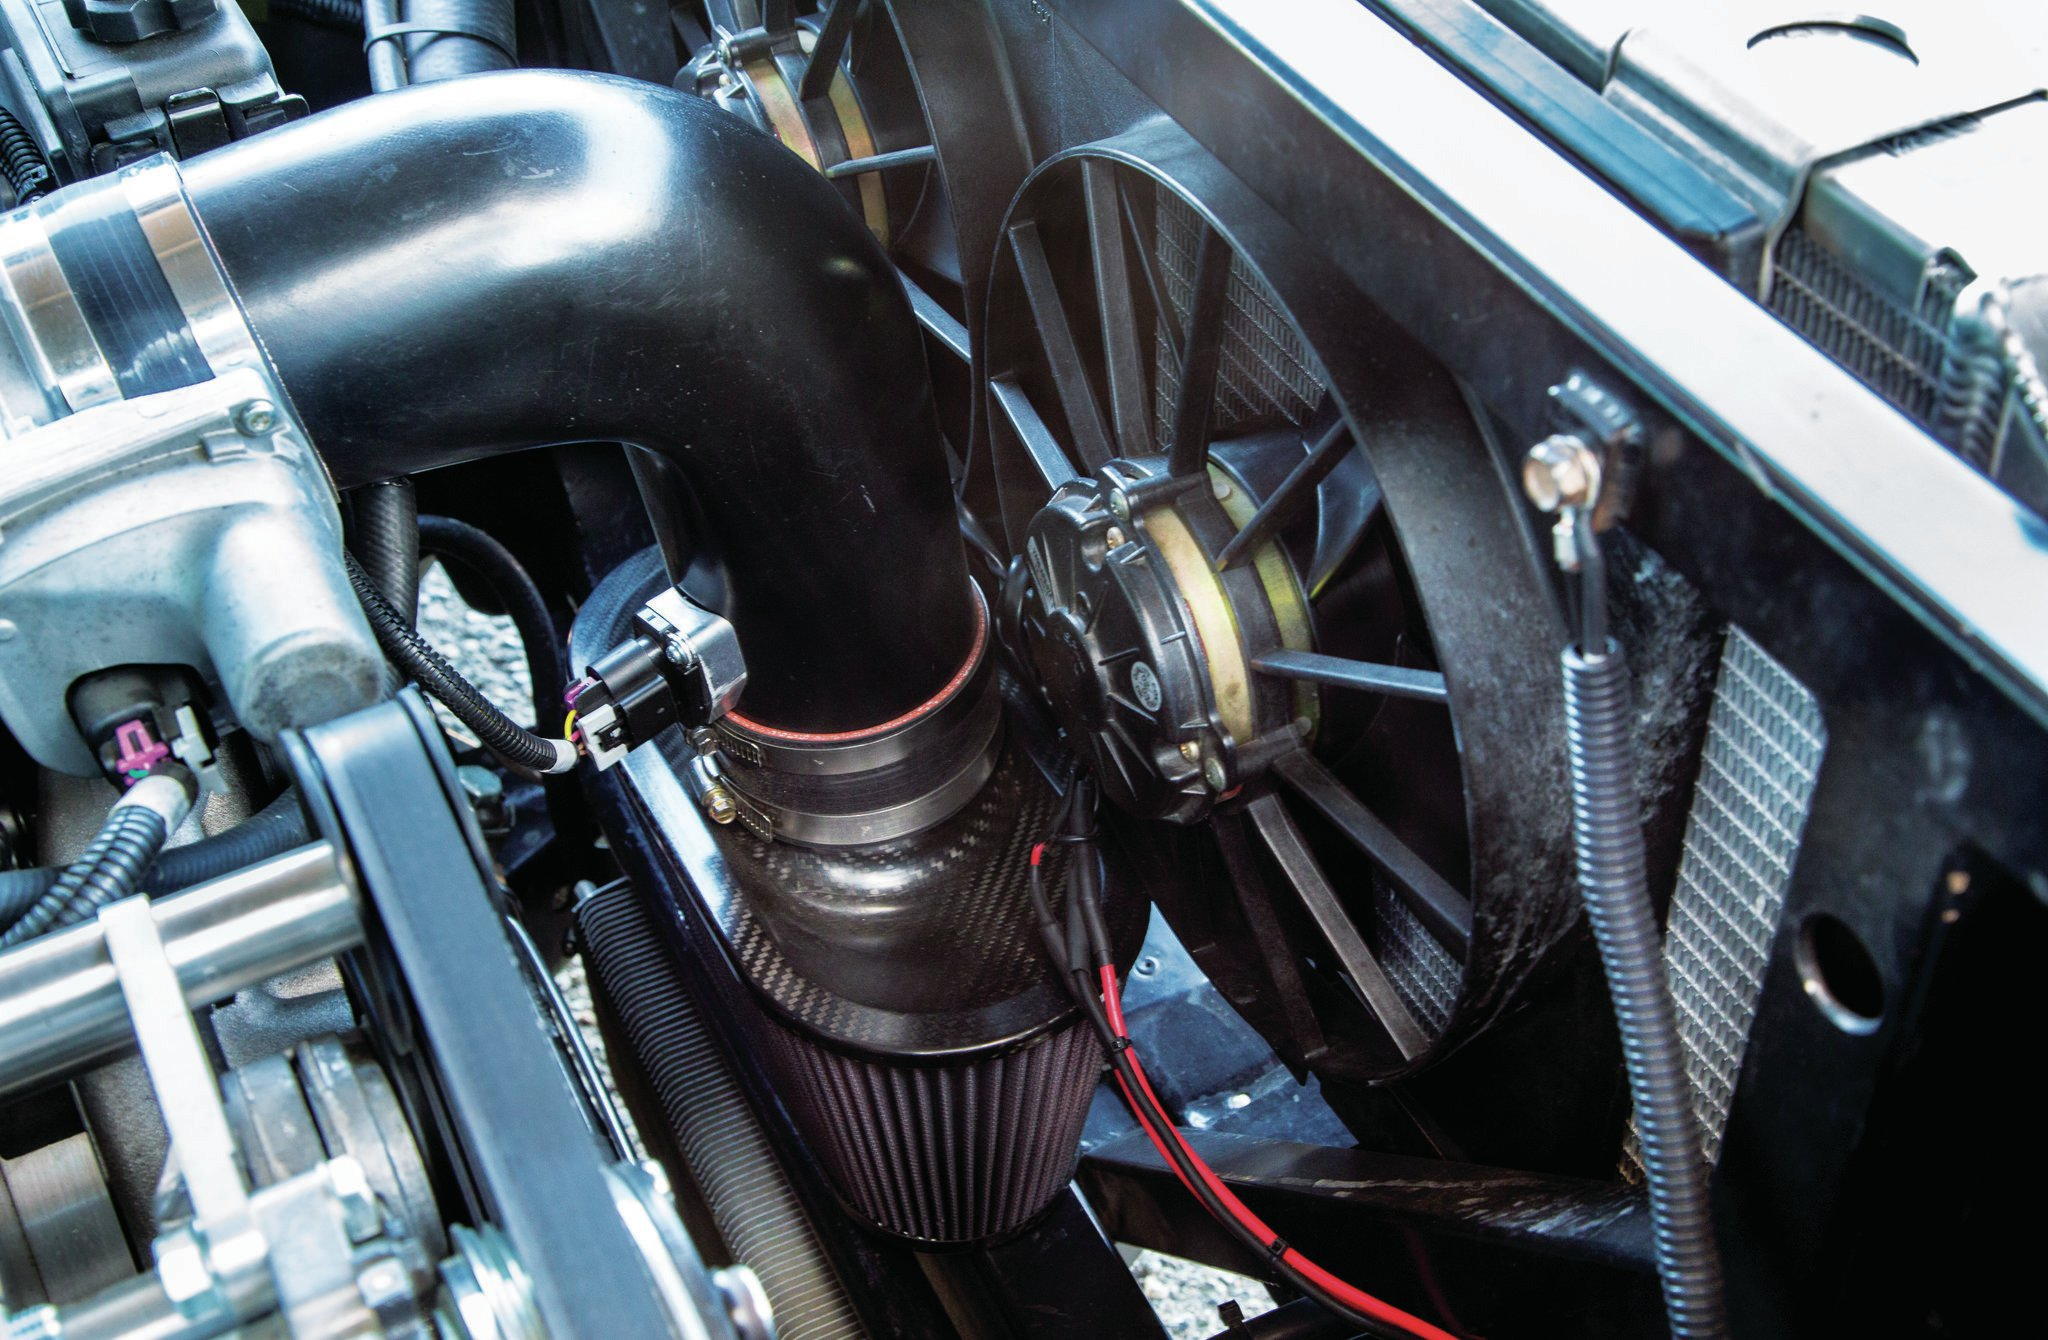 Twin electric fans help pull air through the aluminum radiator. With generous engine setback, the mass airflow sensor has plenty of packaging room. Note extra core support bracing.